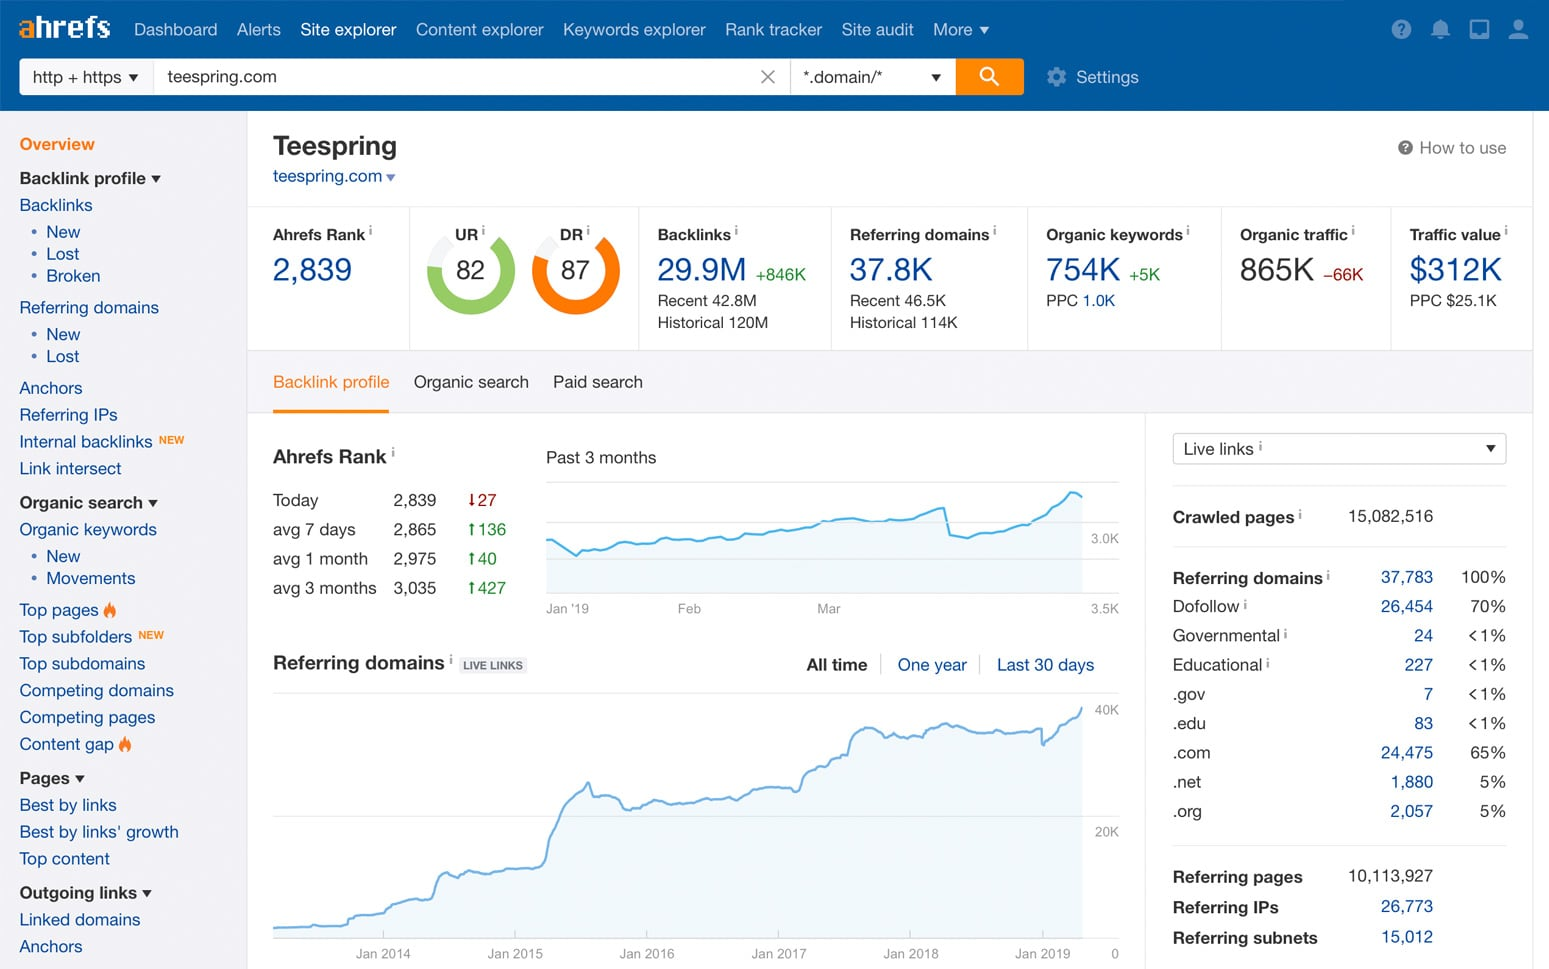 Ahrefs marketing research tool